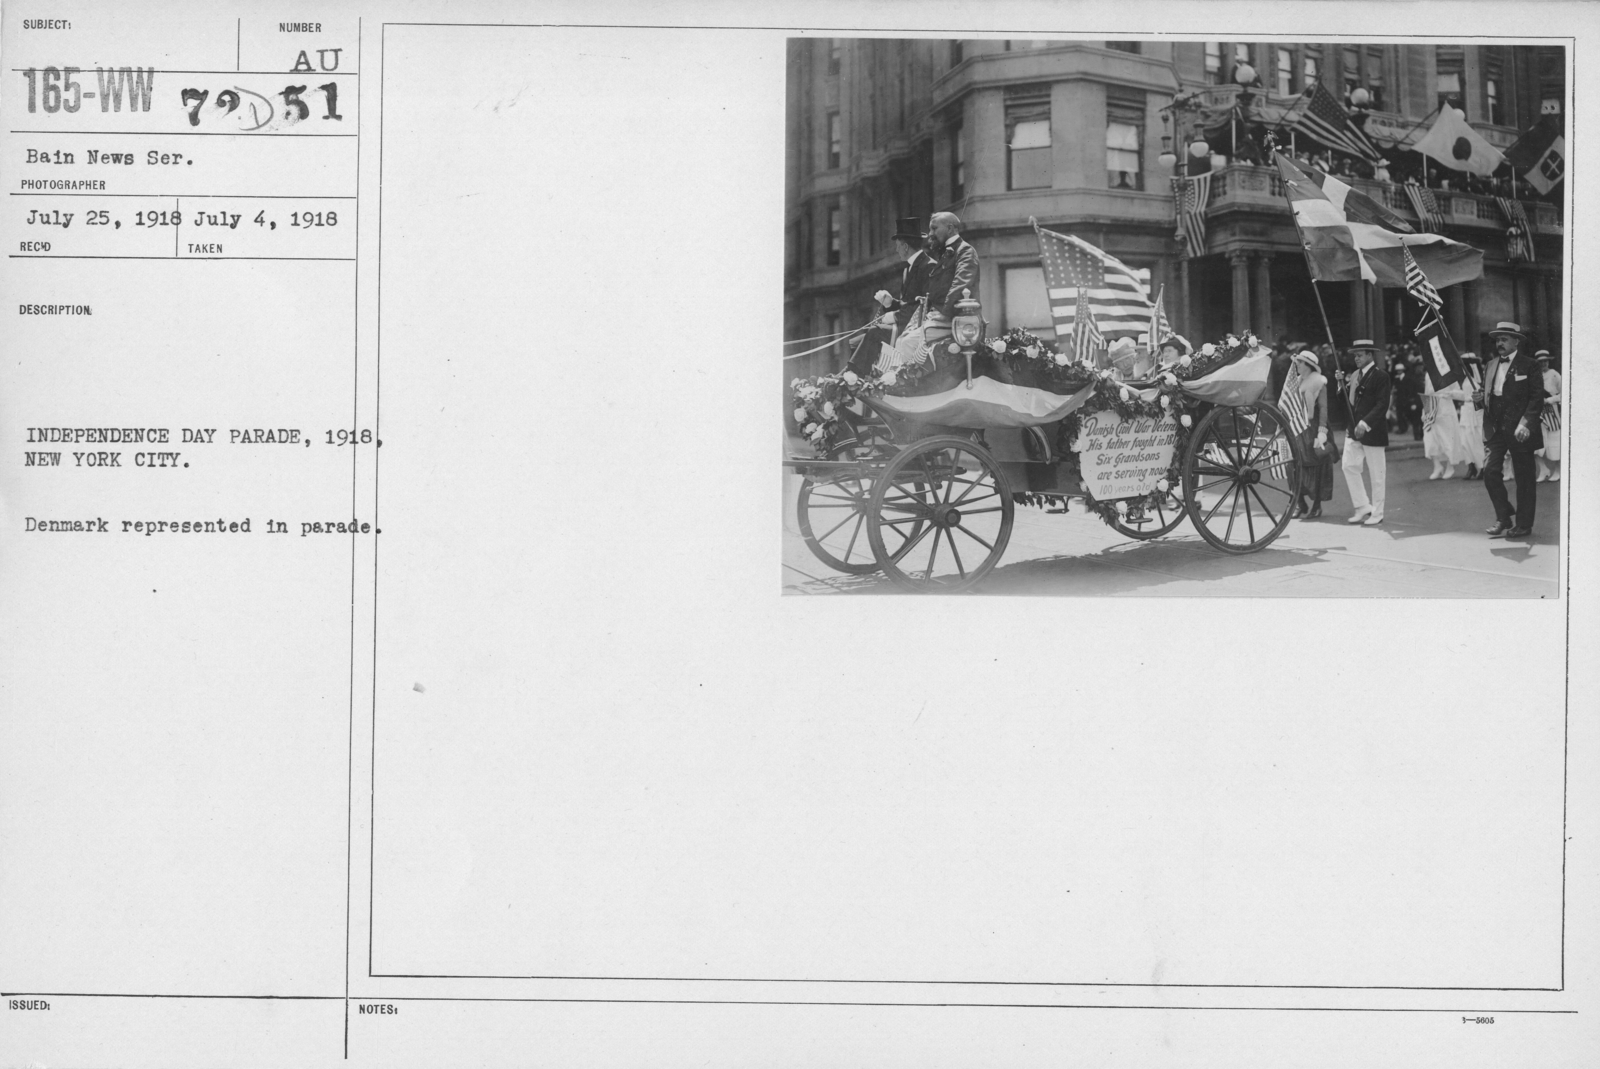 Ceremonies - Independence Day, 1918 - Independence Day Parade, 1918, New York City. Denmark represented in parade